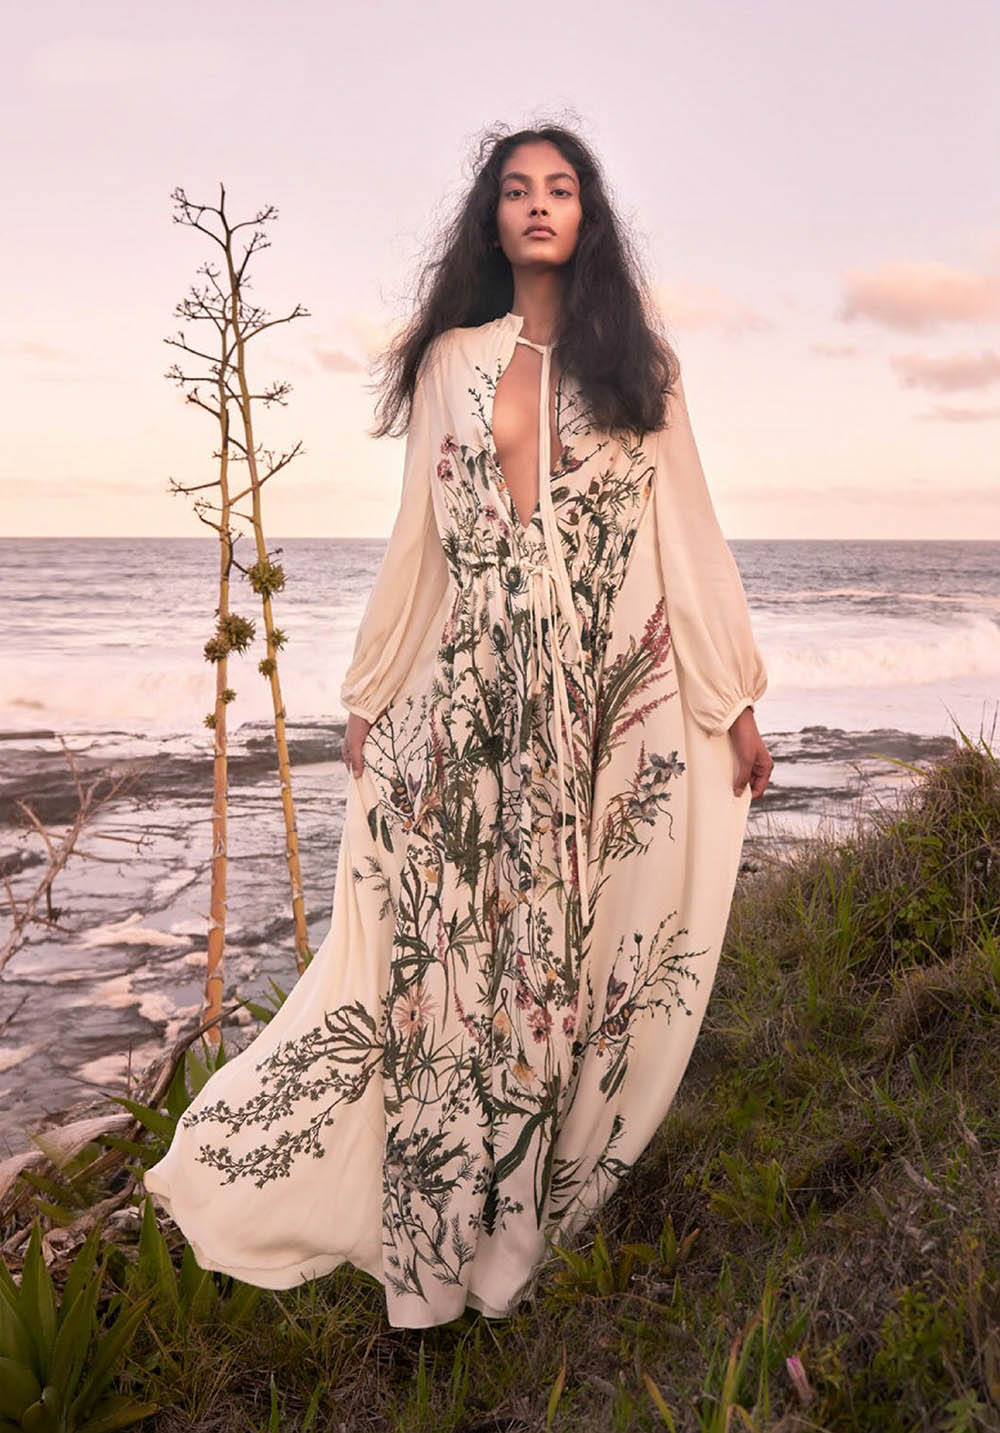 ''Mother Nature'' by Holly Ward for Harper's Bazaar Australia April 2020